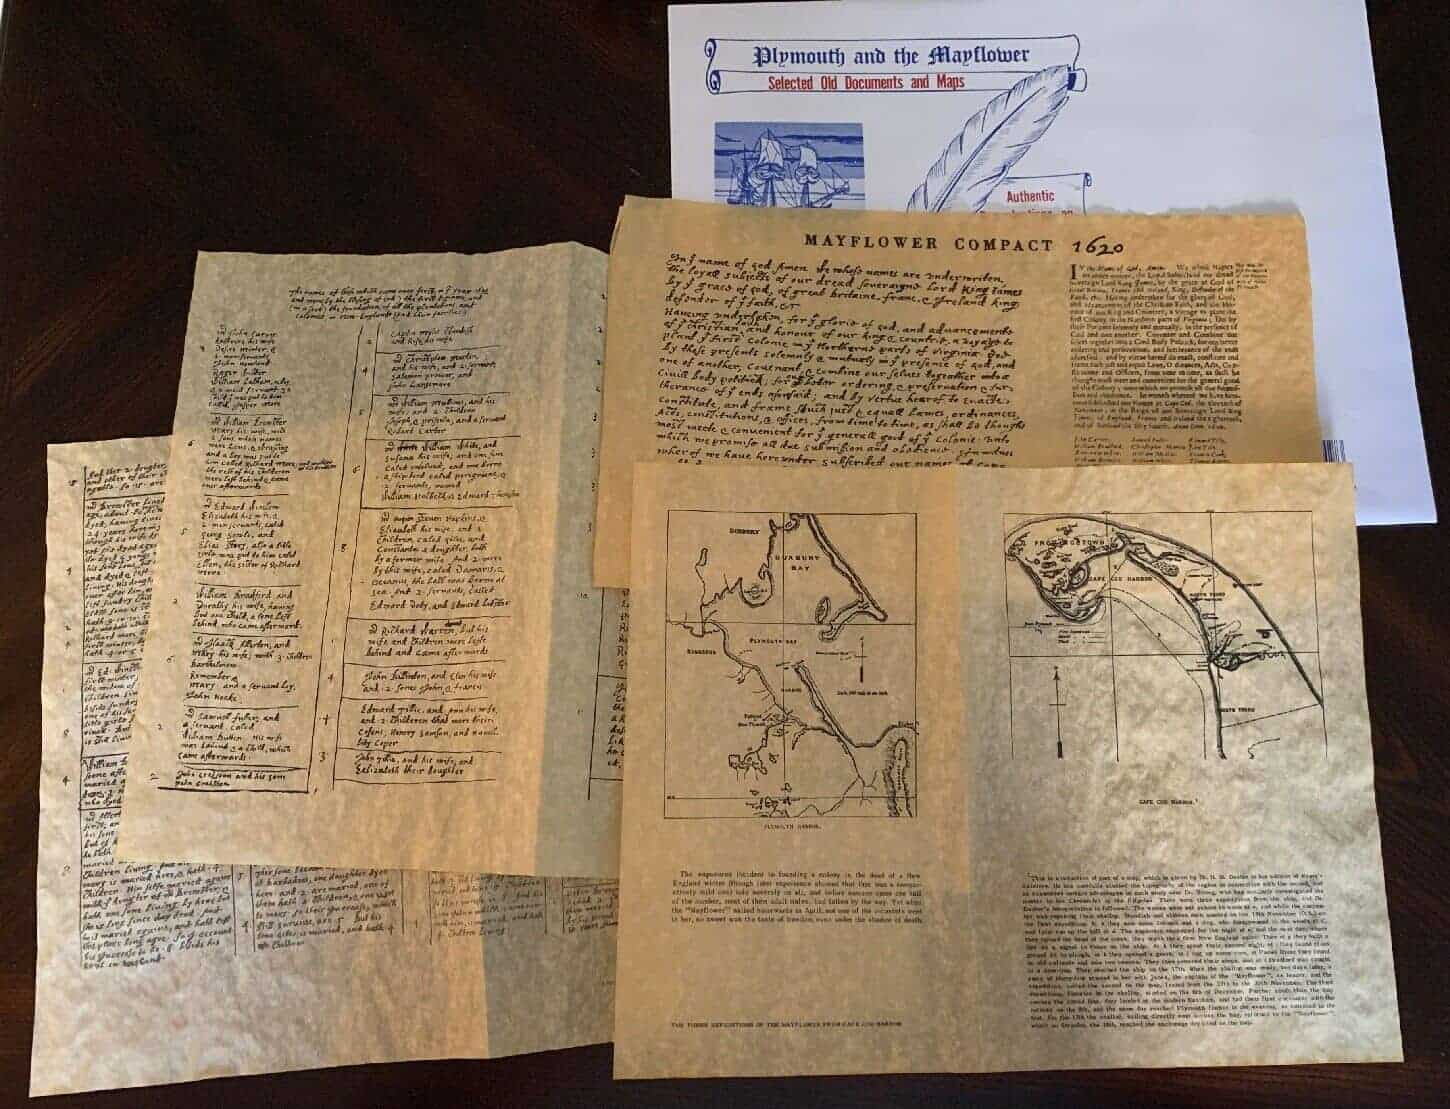 Plymouth and The Mayflower Old Documents and Maps